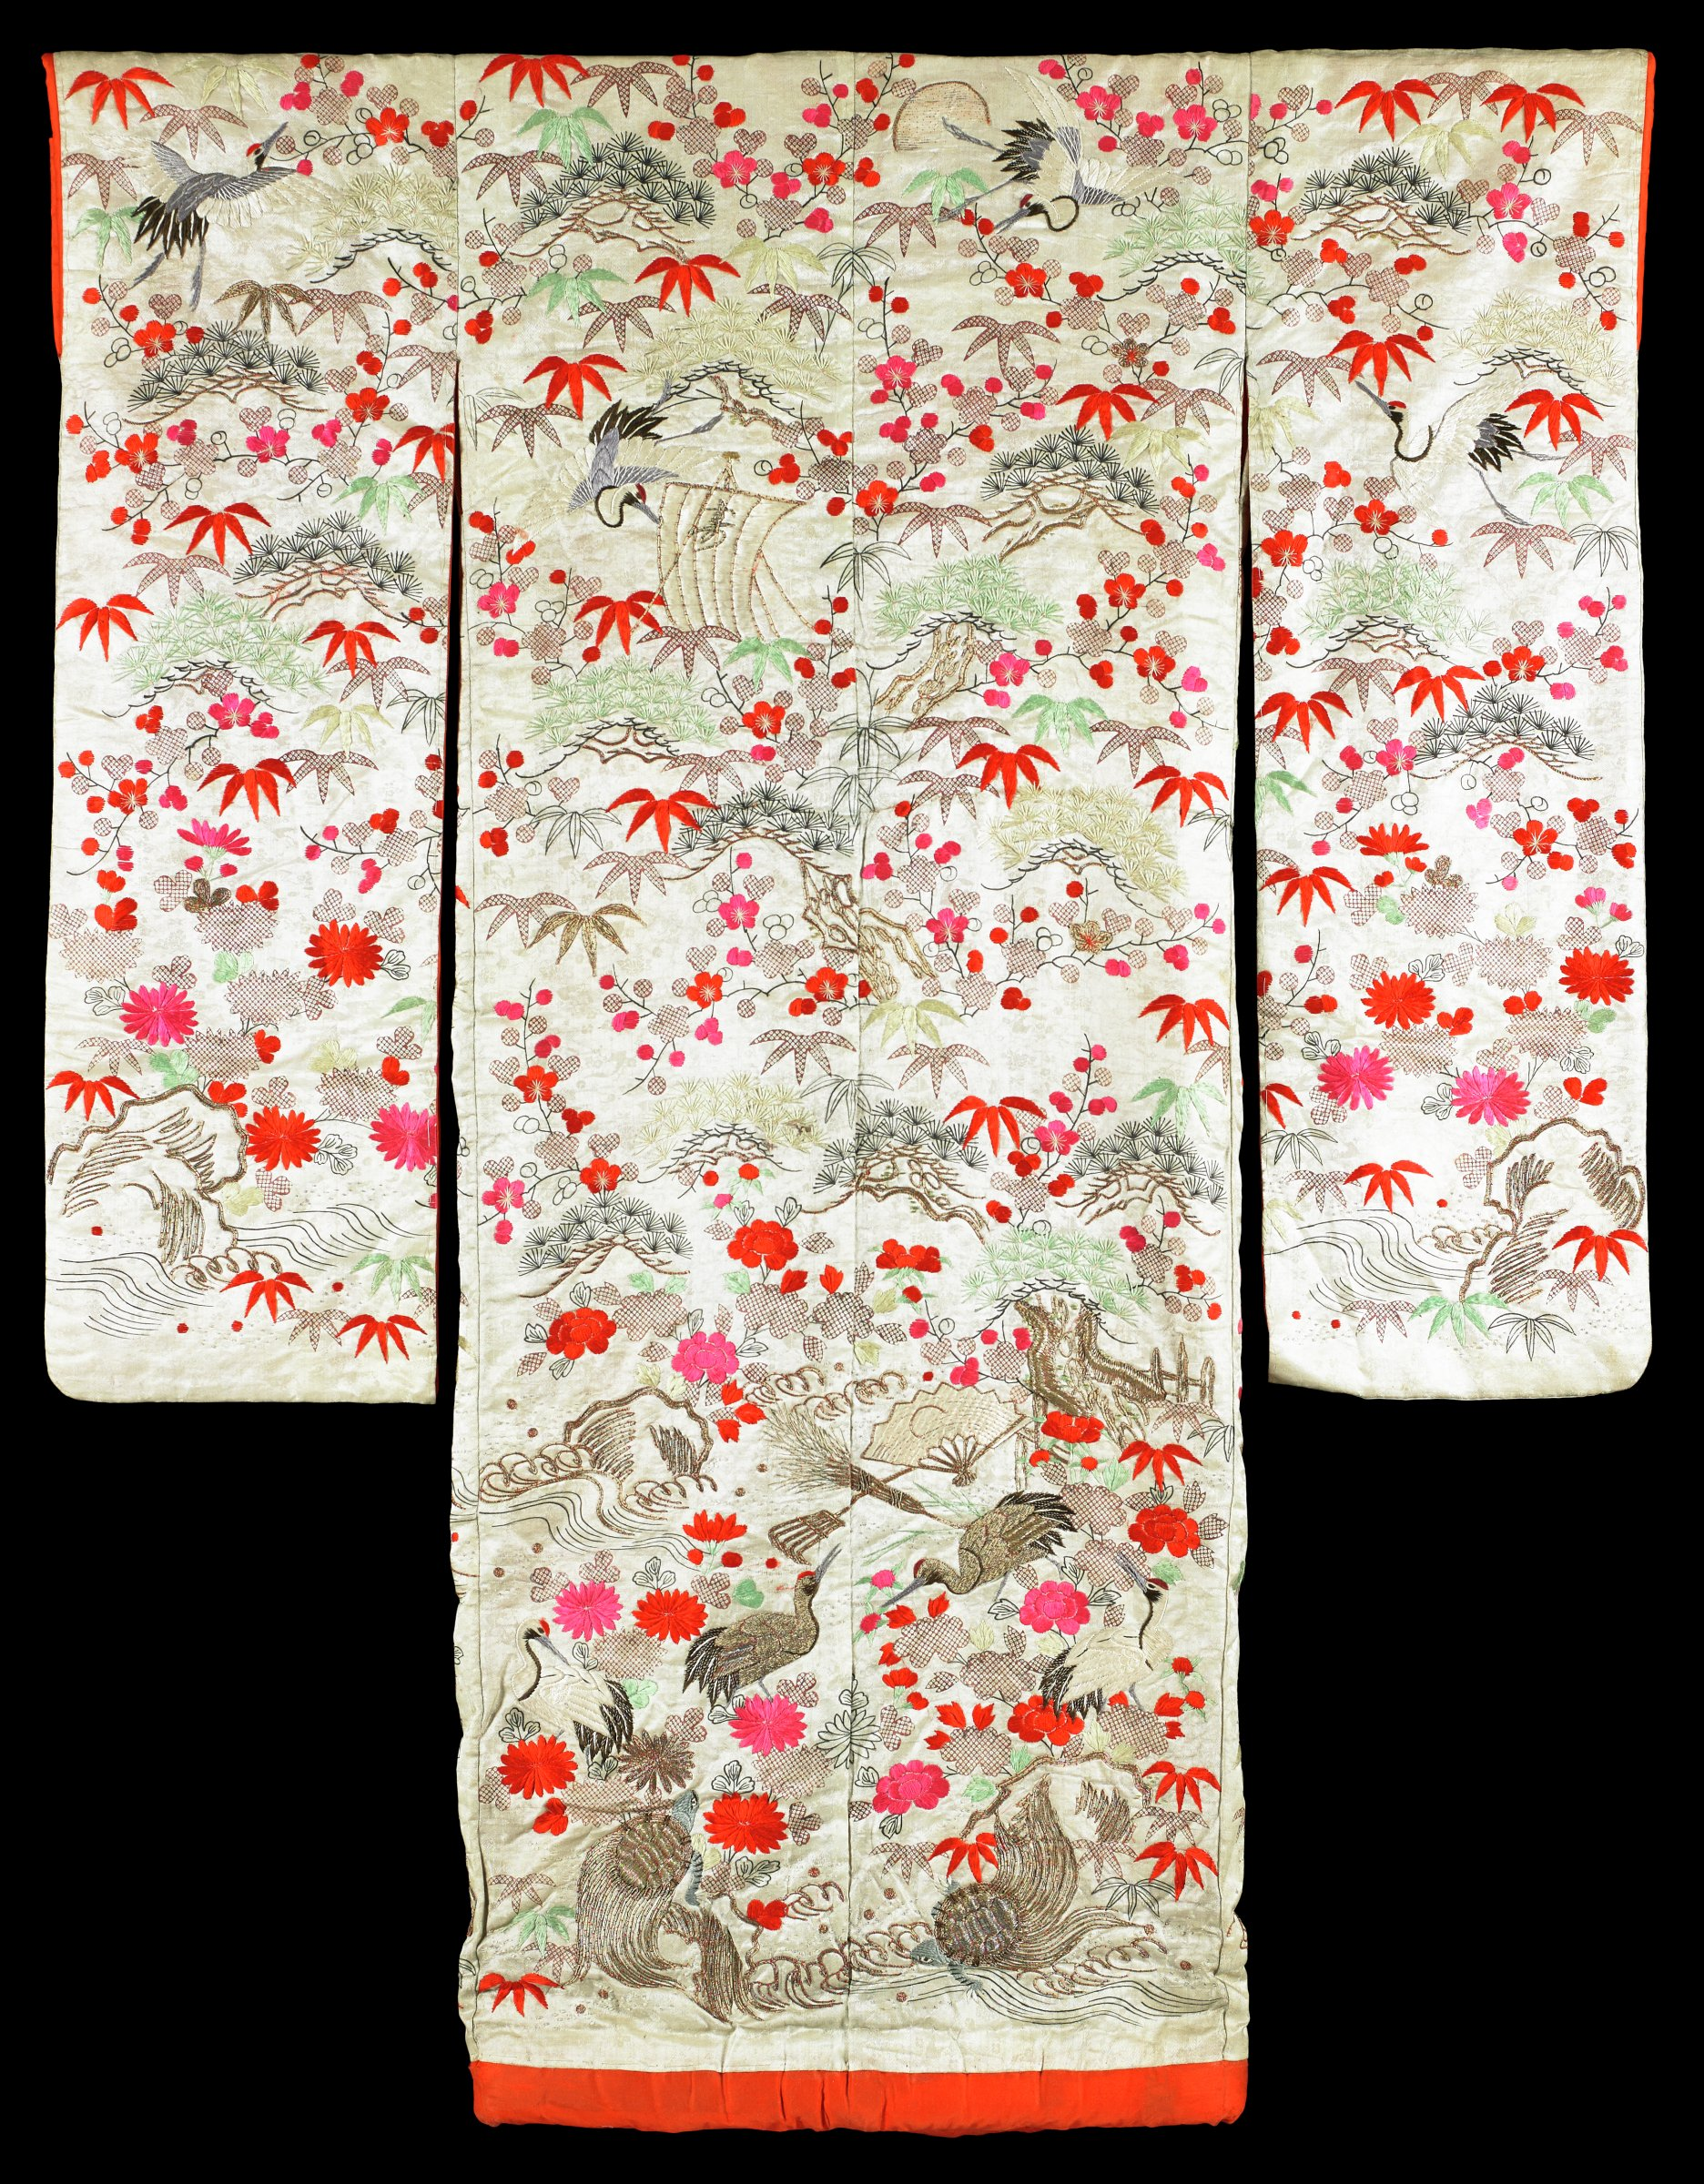 Furisode Kimono with Three Friends of Winter (Pine, Plum and Bamboo), Longevity Symbols such as Cranes, Tortoises and Emblems of the Seven Lucky Gods White silk ground, red stuffed hem, gold and silk embroidery